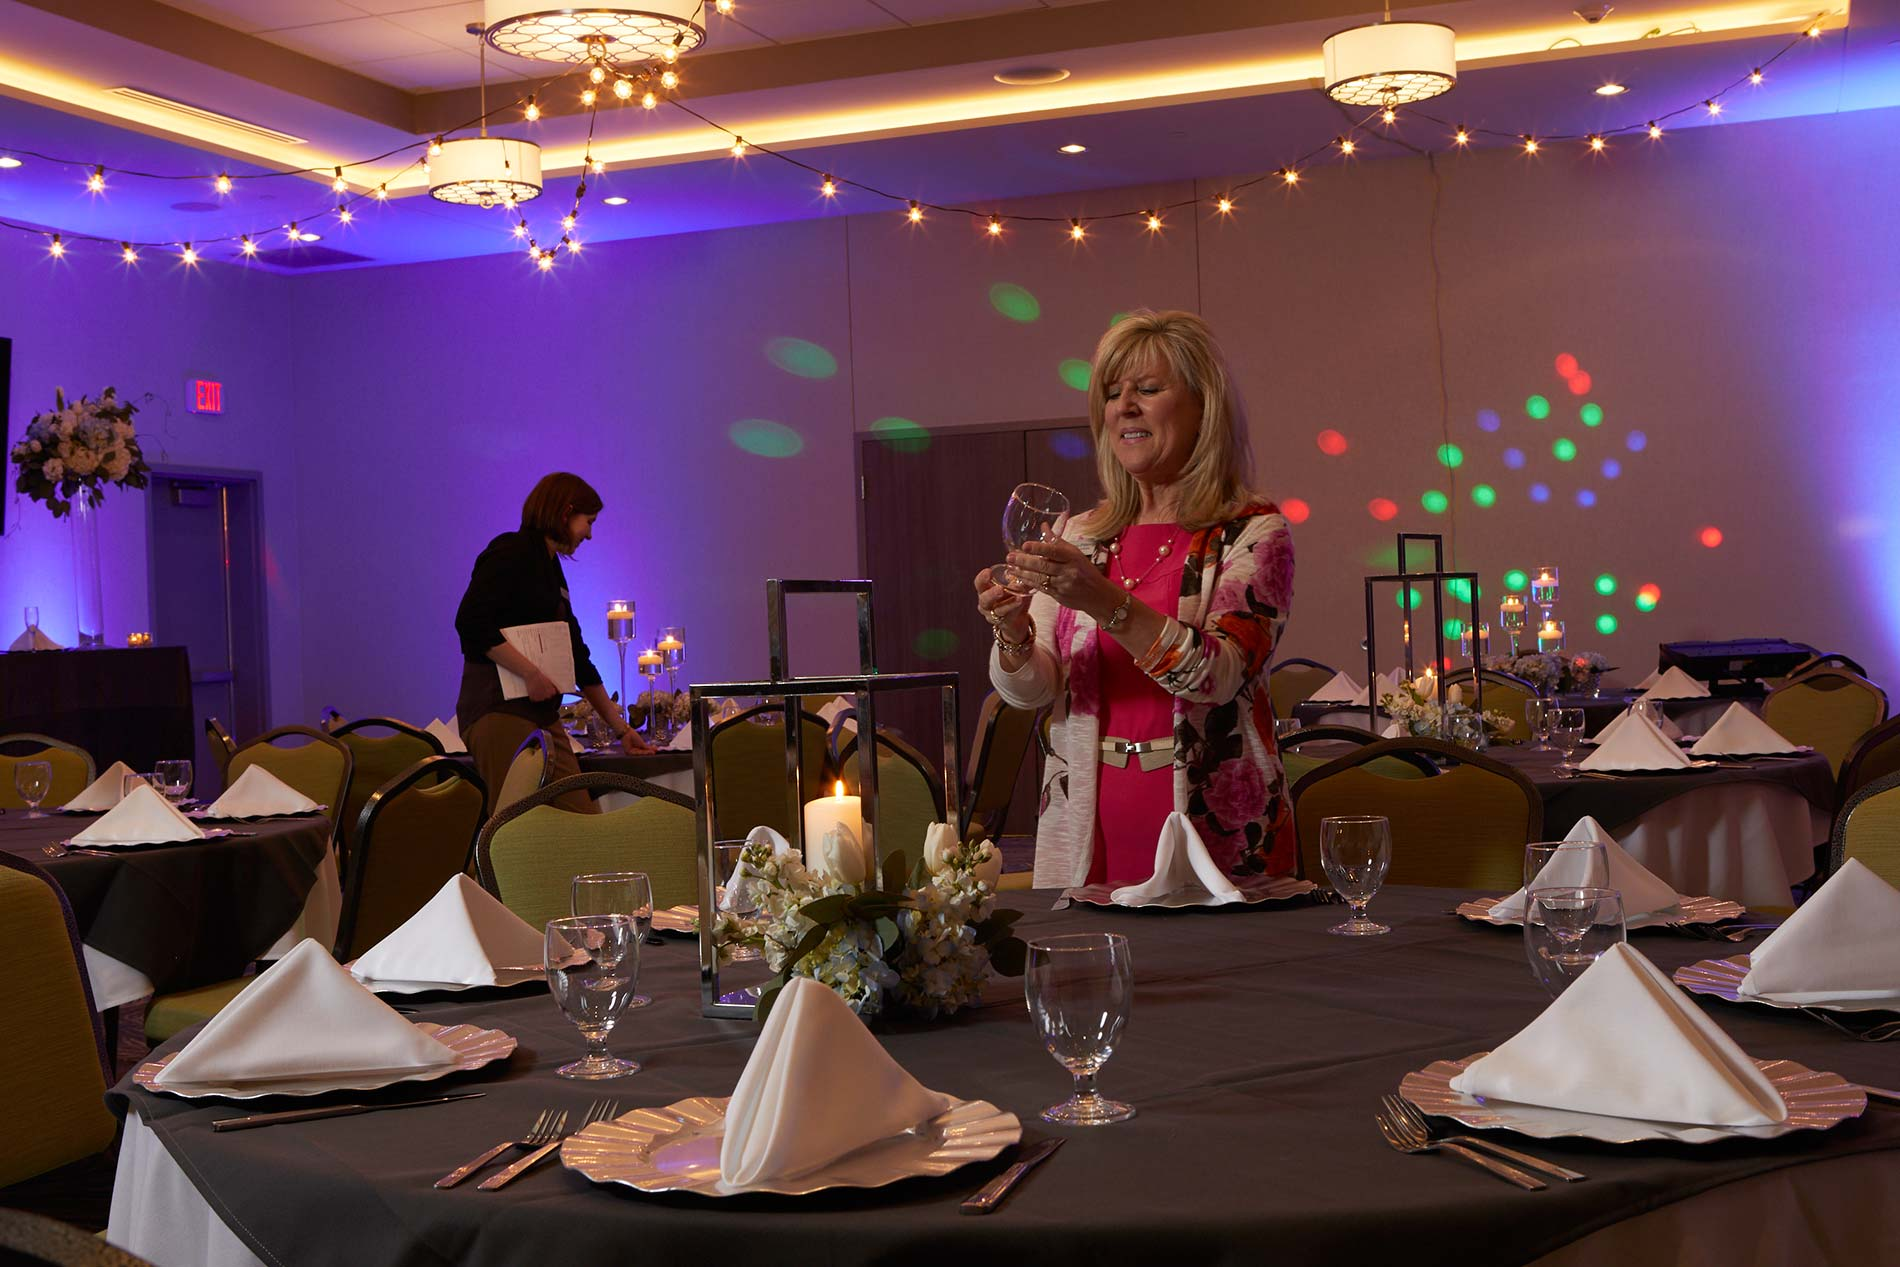 Suburbann Inns Banquets and Events, Hilton Garden, Grand Rapids, East Beltline